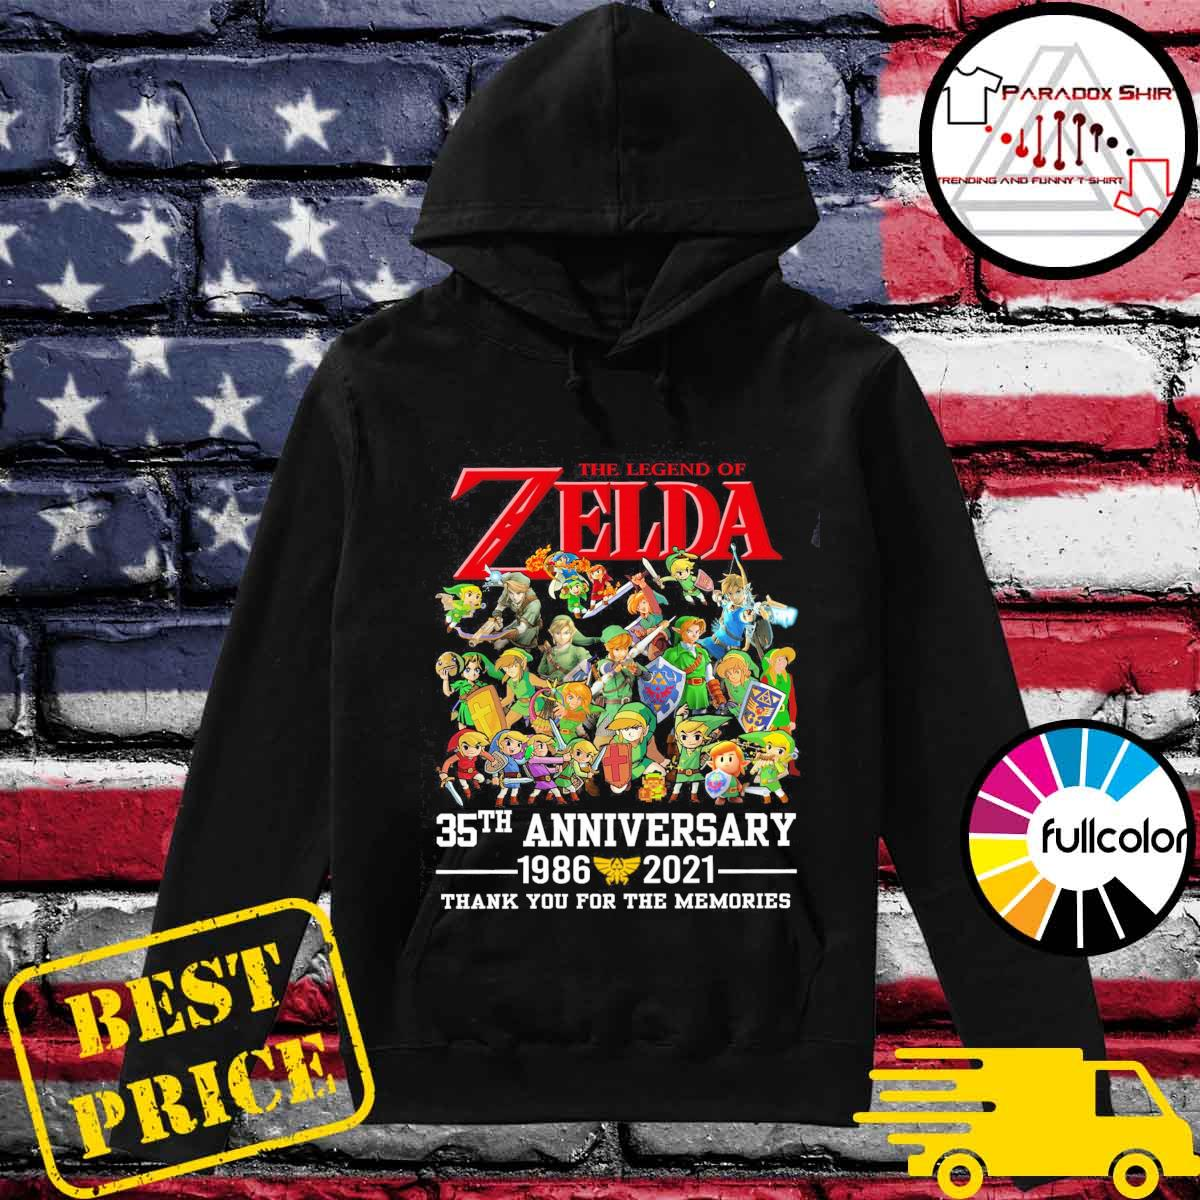 The Legend Of Zelda 35th Anniversary 1986 2021 Thanks For The Memories Shirt Hoodie